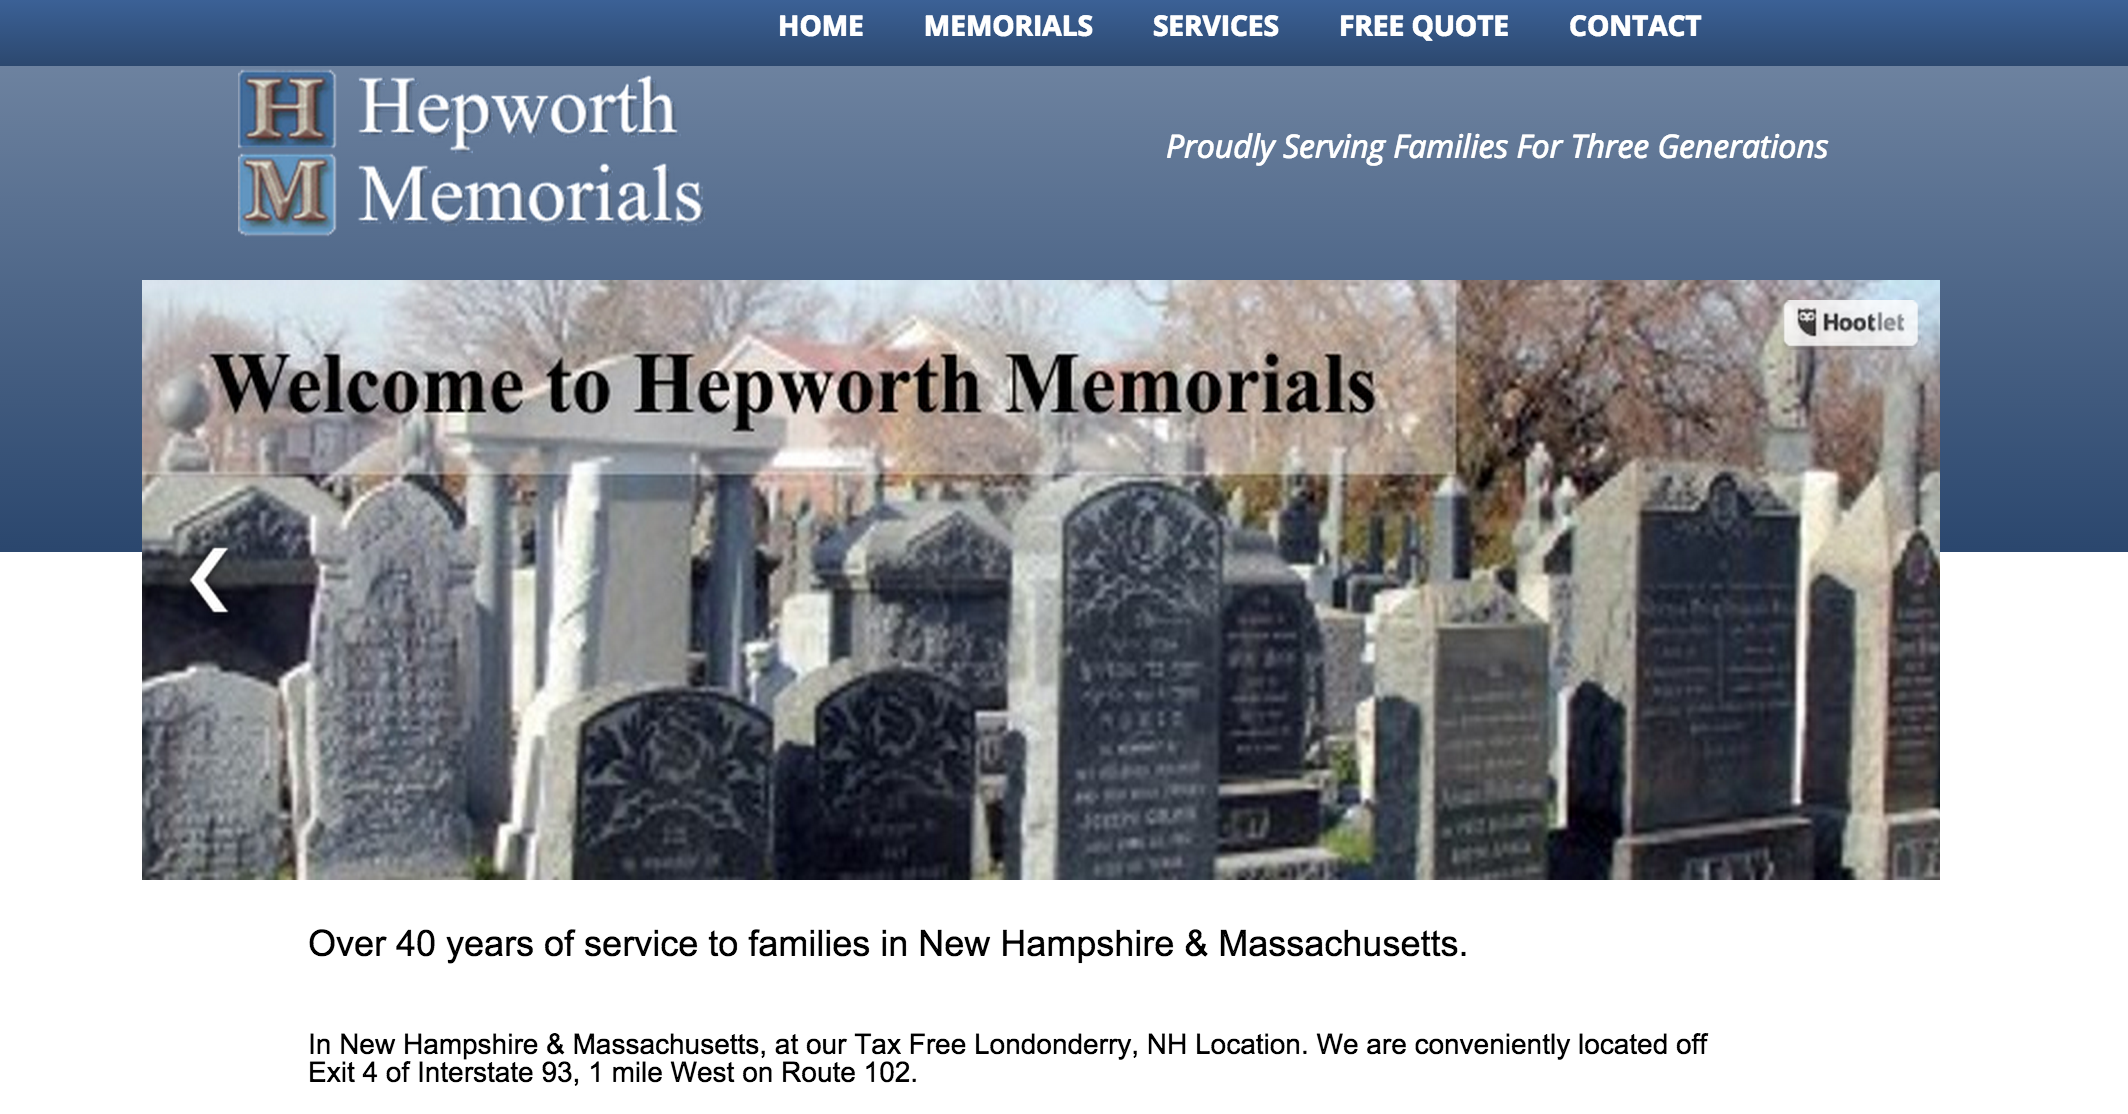 Hepworth Memorials - Londonderry, NHHepworth Memorials invites you to visit their Memorial display online or in person in Londonderry New Hampshire. Here you will see some of the beautiful, permanent Memorials available to honor your dearly departed. From a simple marker to an elaborate monument. I can help you to create a meaningful, everlasting tribute.Hepworth Memorials - In New Hampshire & Massachusetts, at our Tax Free Londonderry, NH Location. We are conveniently located off Exit 4 of Interstate 93, 1 mile West on Route 102.